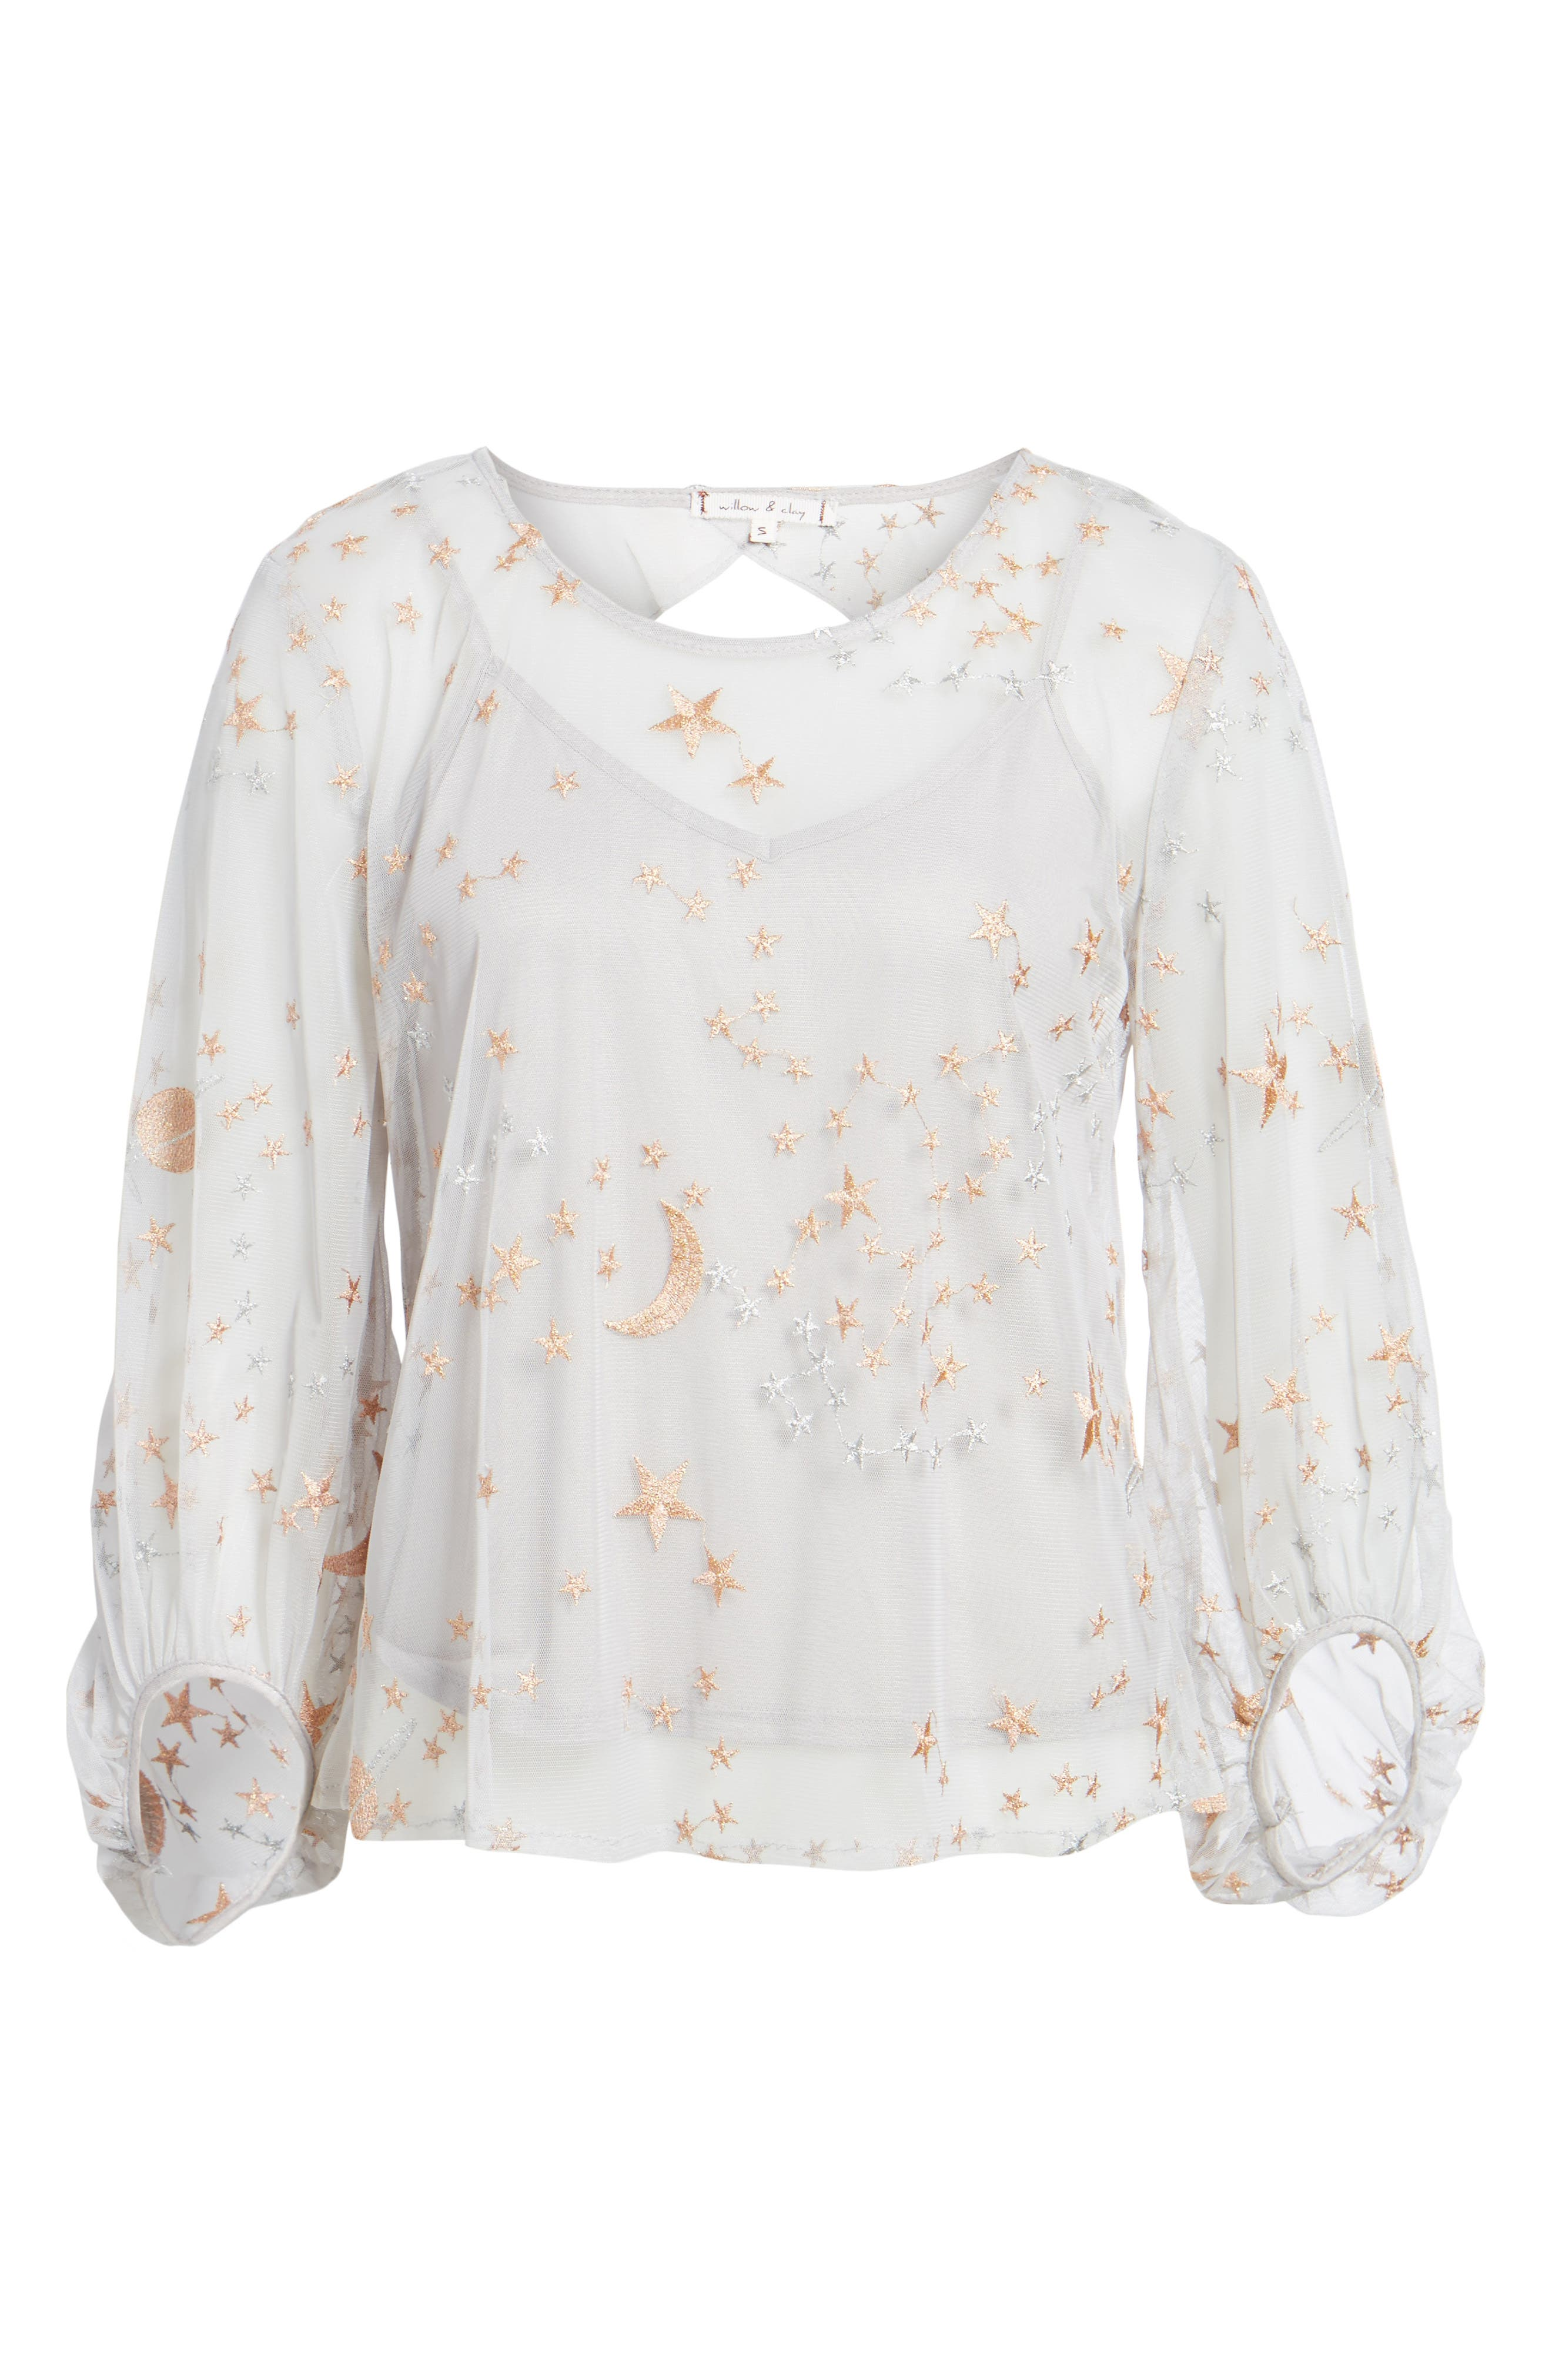 Embroidered Top,                             Alternate thumbnail 6, color,                             040